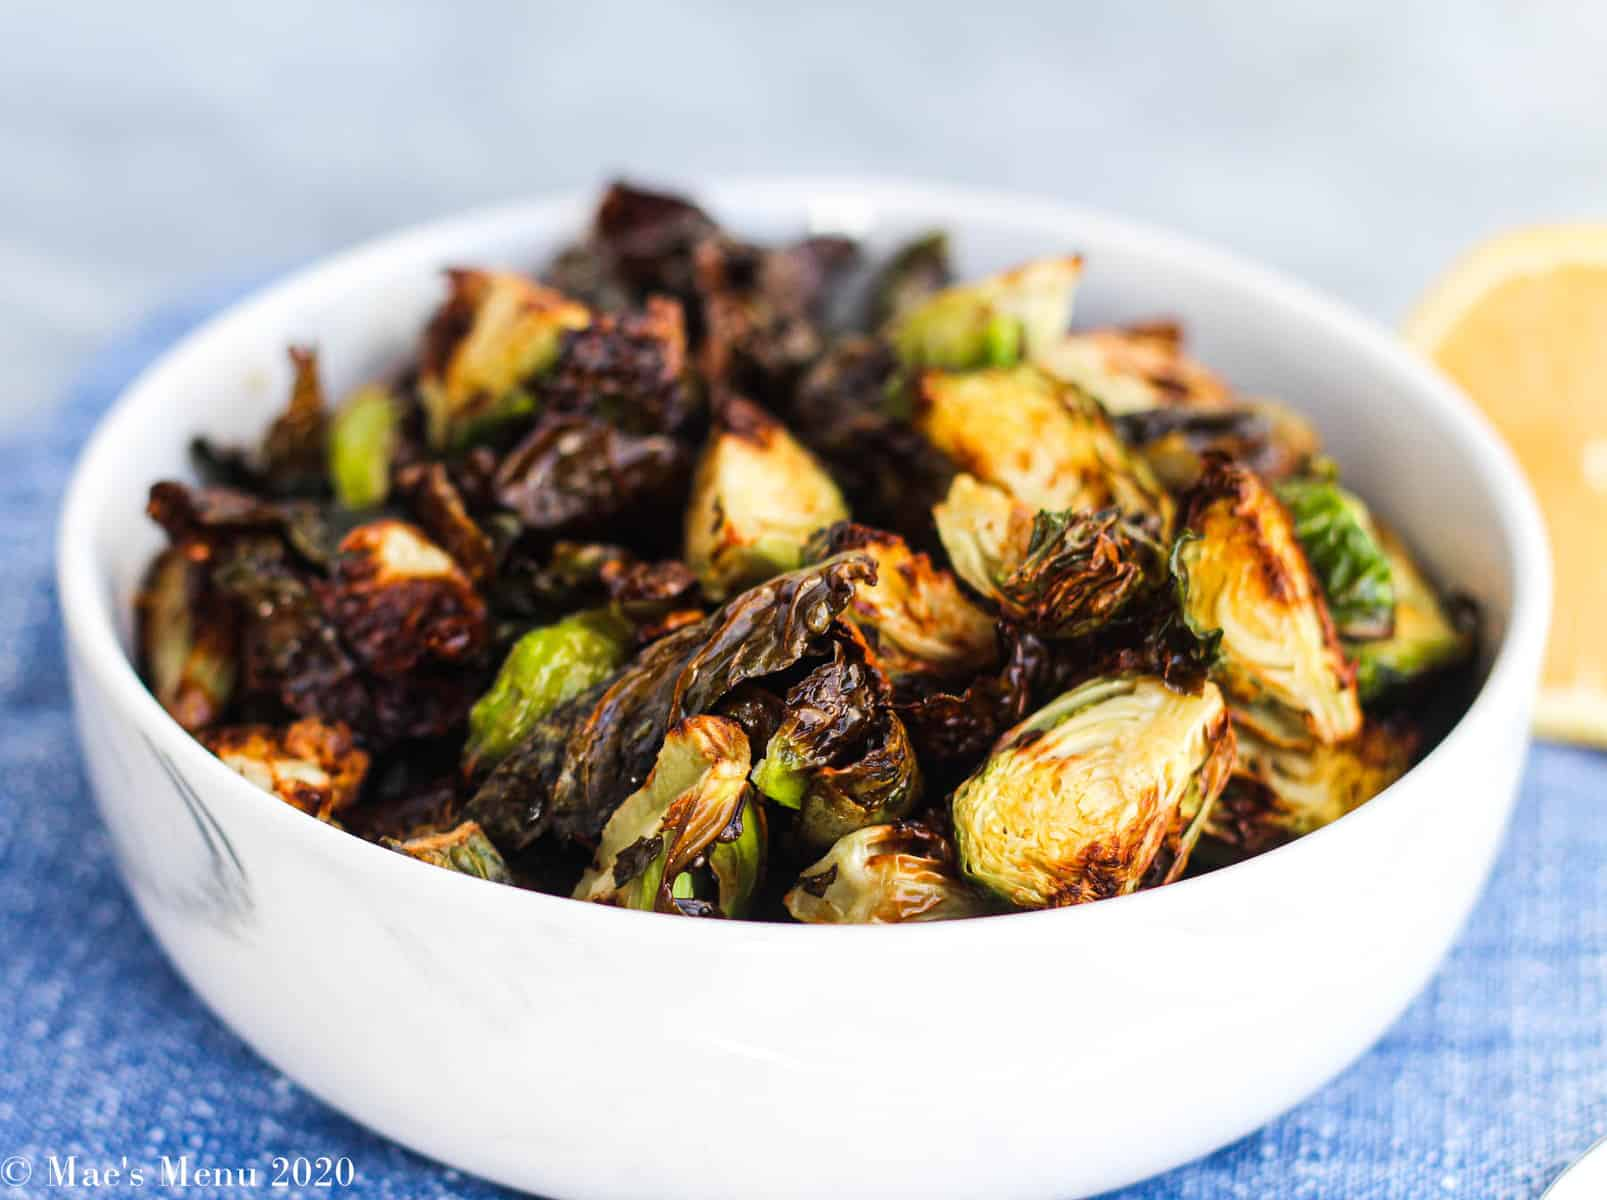 A side angle shot of a white bowl of air fryer brussels sprouts next to a lemon half